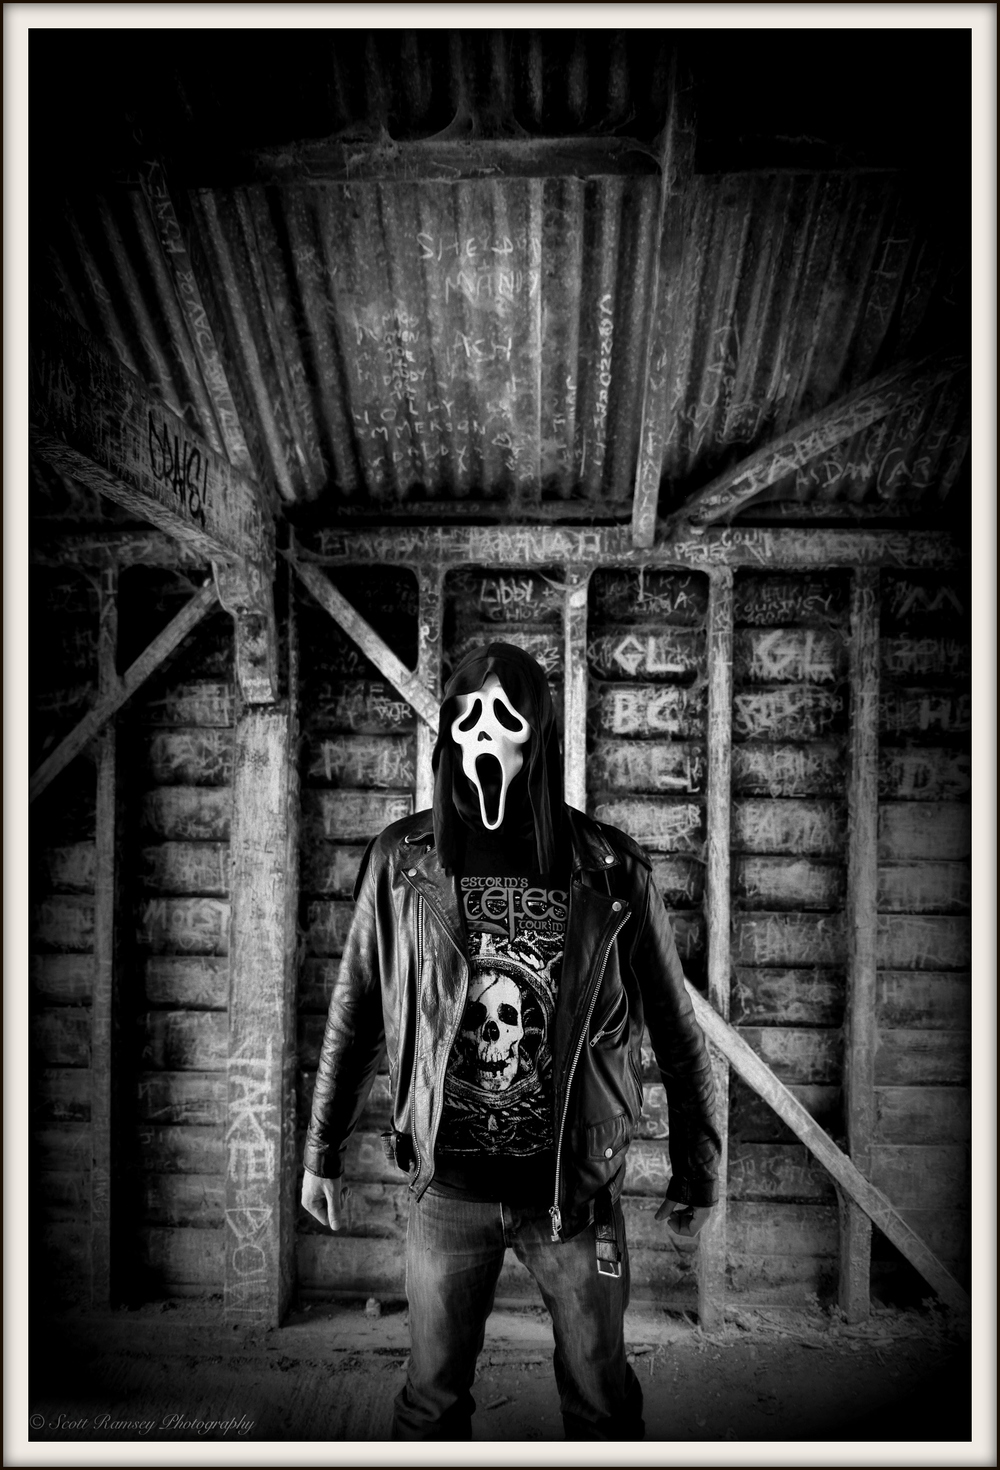 A masked man stands in front of a graffiti covered wall in this Halloween photo. © Scott Ramsey Photography